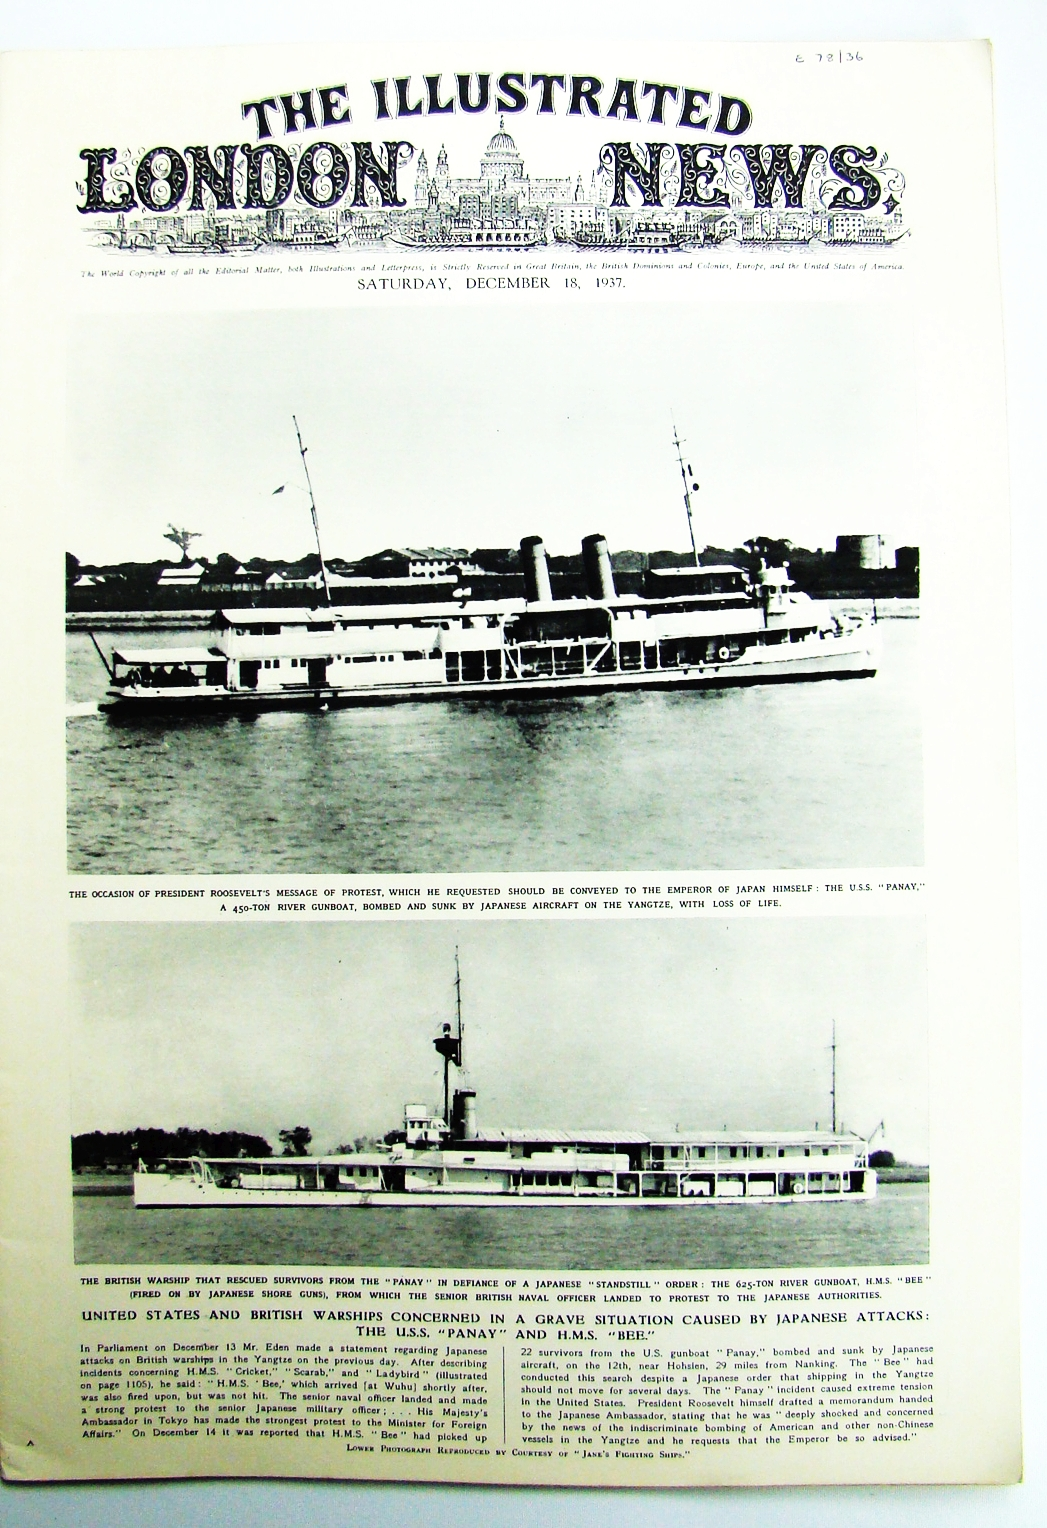 Image for The Illustrated London News, Saturday, December [Dec.] 18,1937 - Cover Photos of the U.S.S.'Panay' and H.M.S. 'Bee', Both Attacked By the Japanese